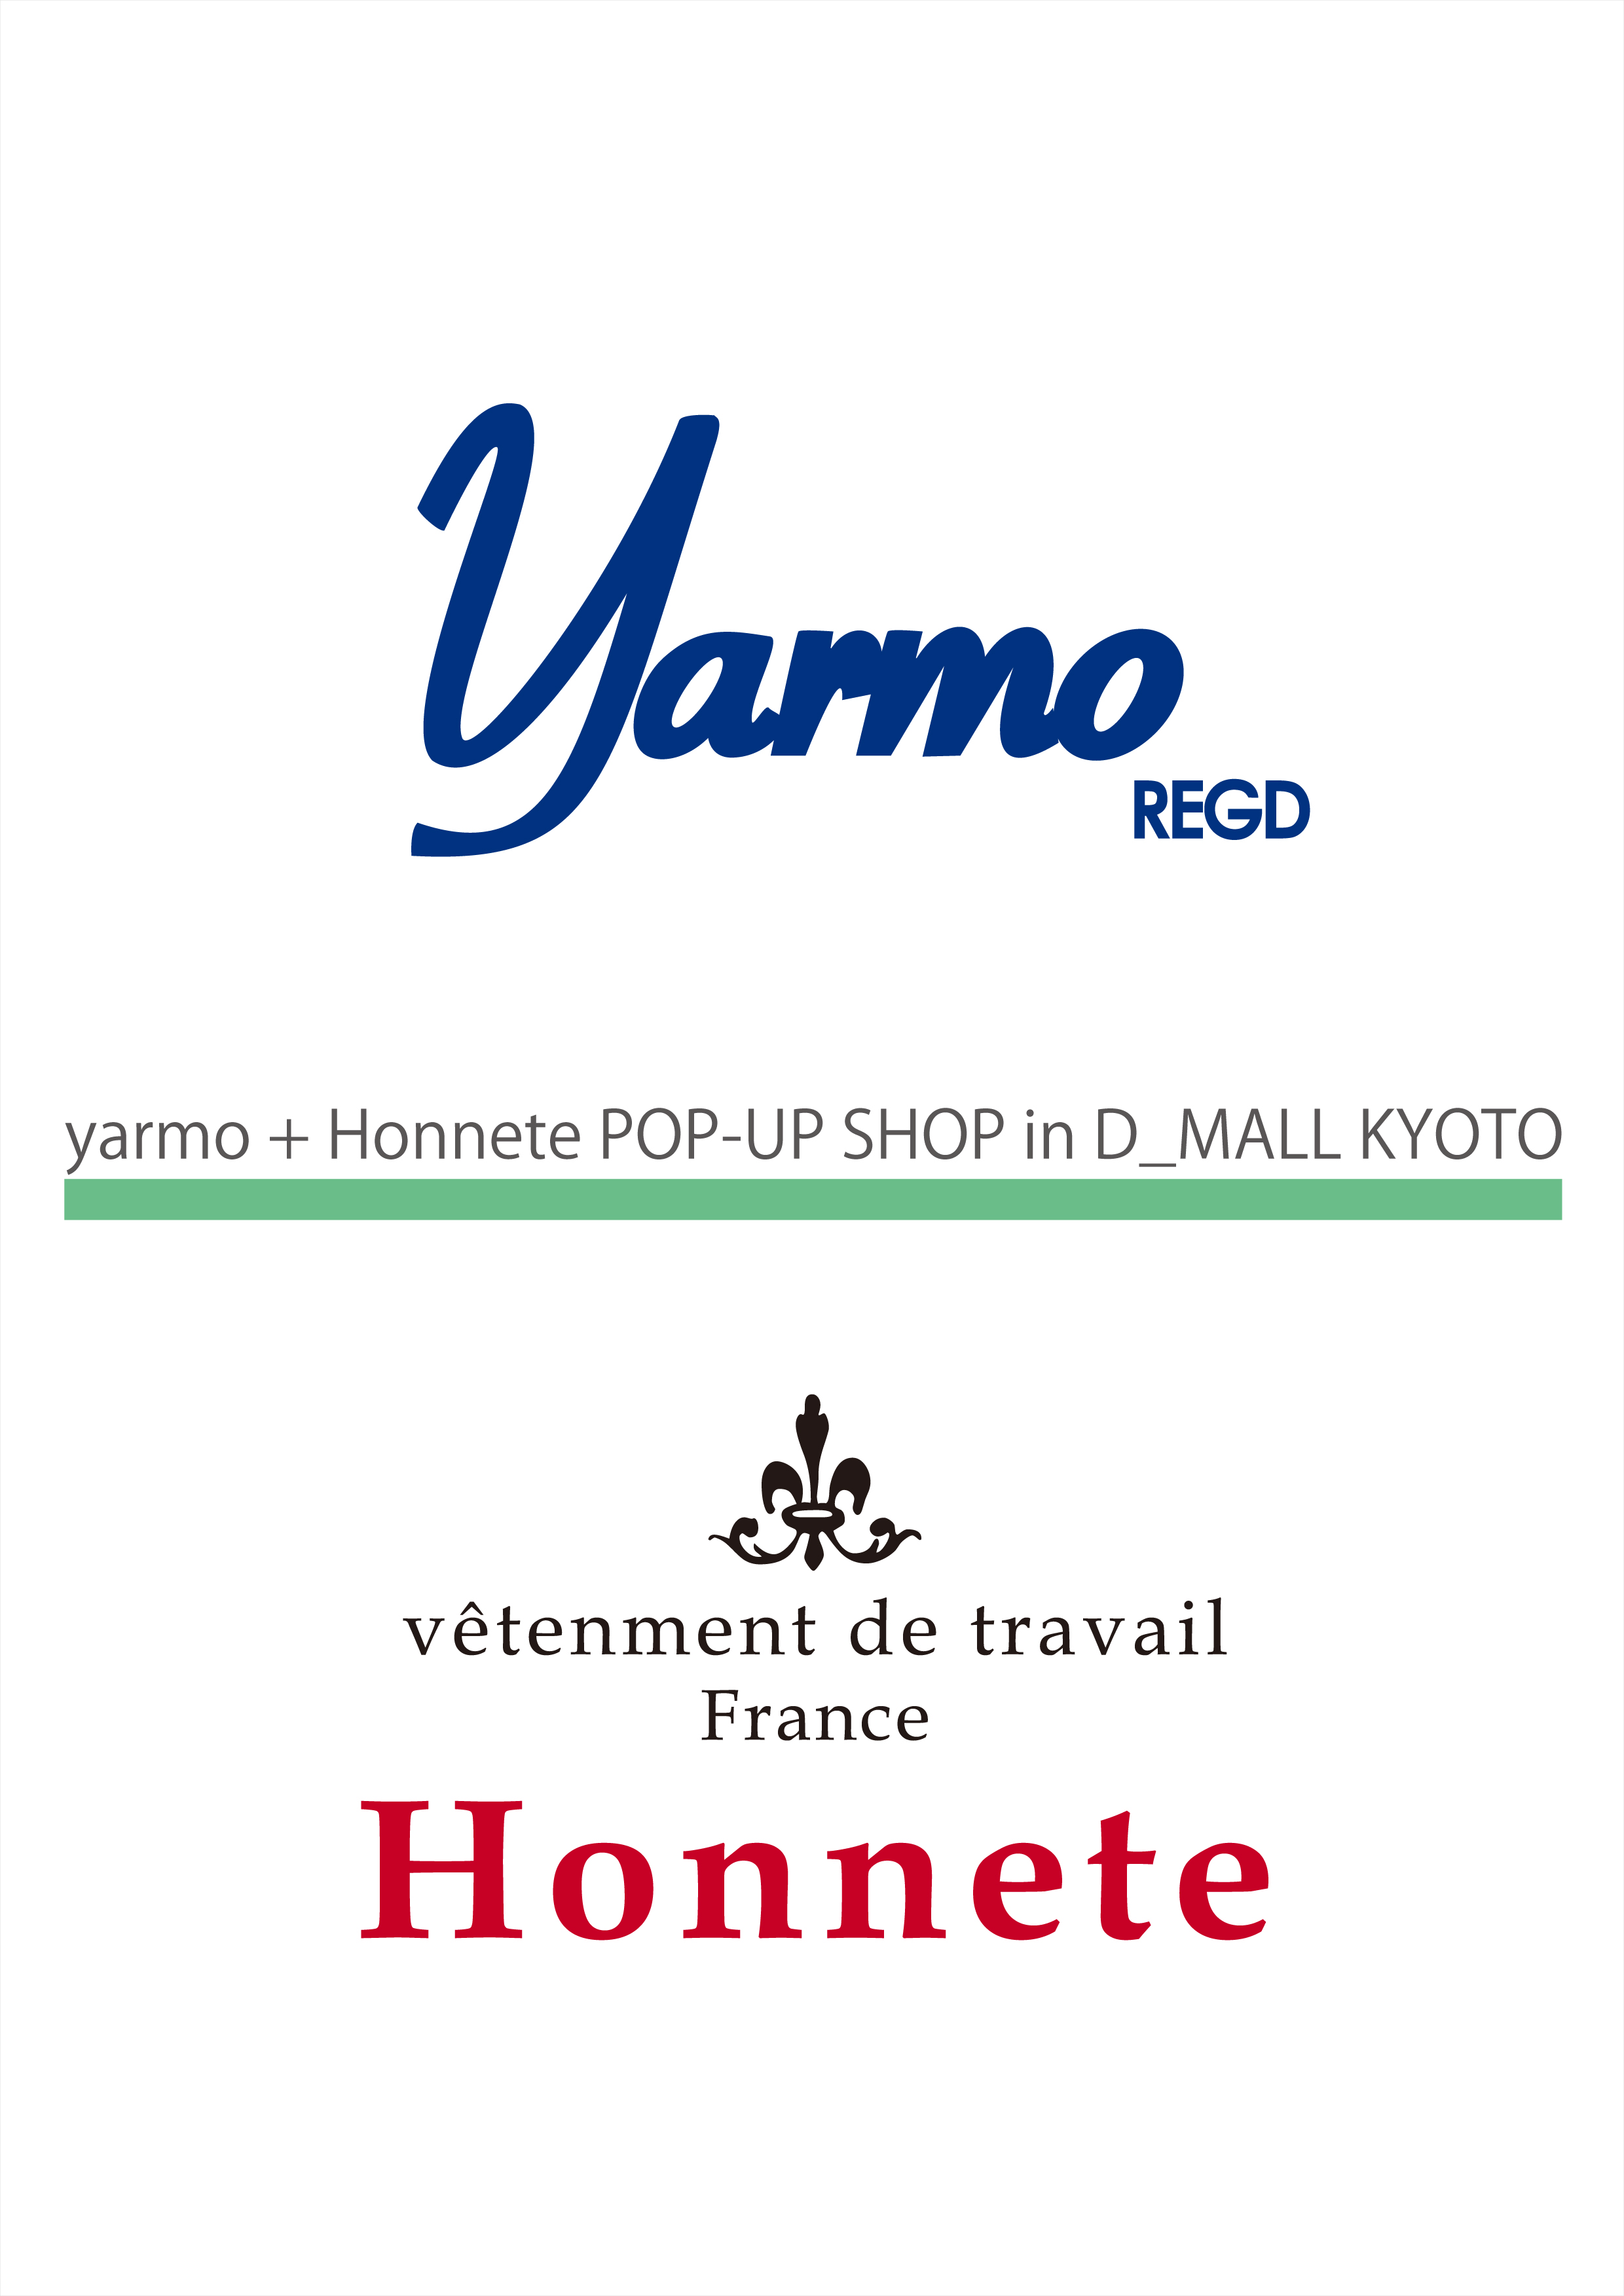 YARMO & HONNETE PO-UP SHOP @ D_MALL KYOTO